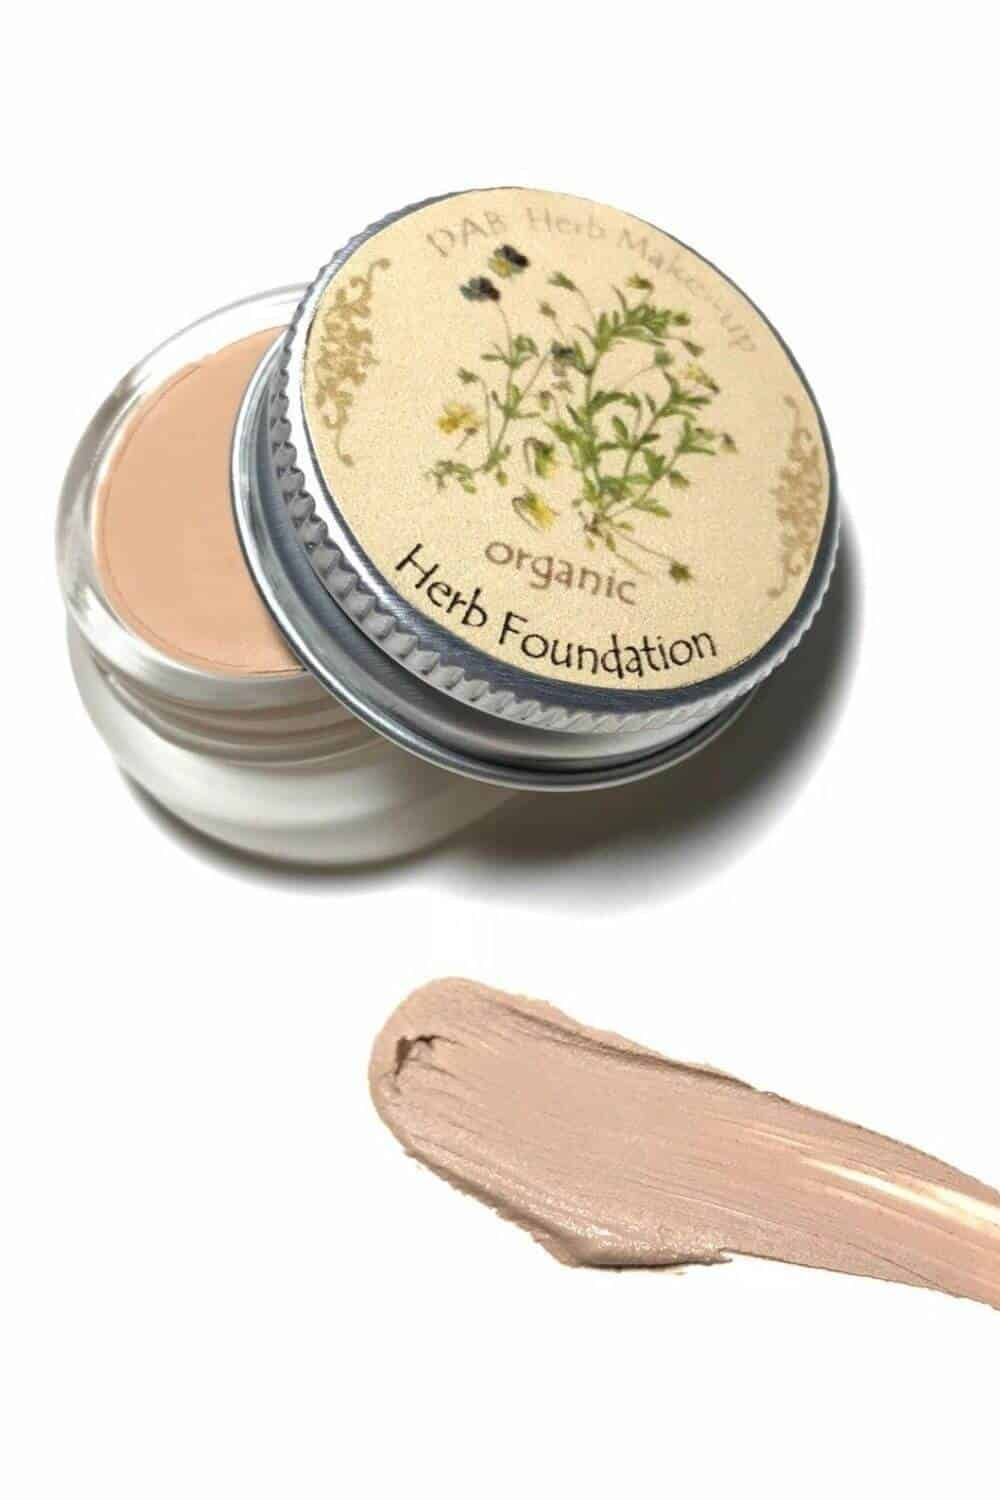 On the look out for sustainable and eco friendly makeup? Thankfully, there are quite a few ethical makeup brands out there to choose from. And many are available and based in the UK and US! Image by DAB Herb Makeup #ecofriendlymakeup #sustainablejungle